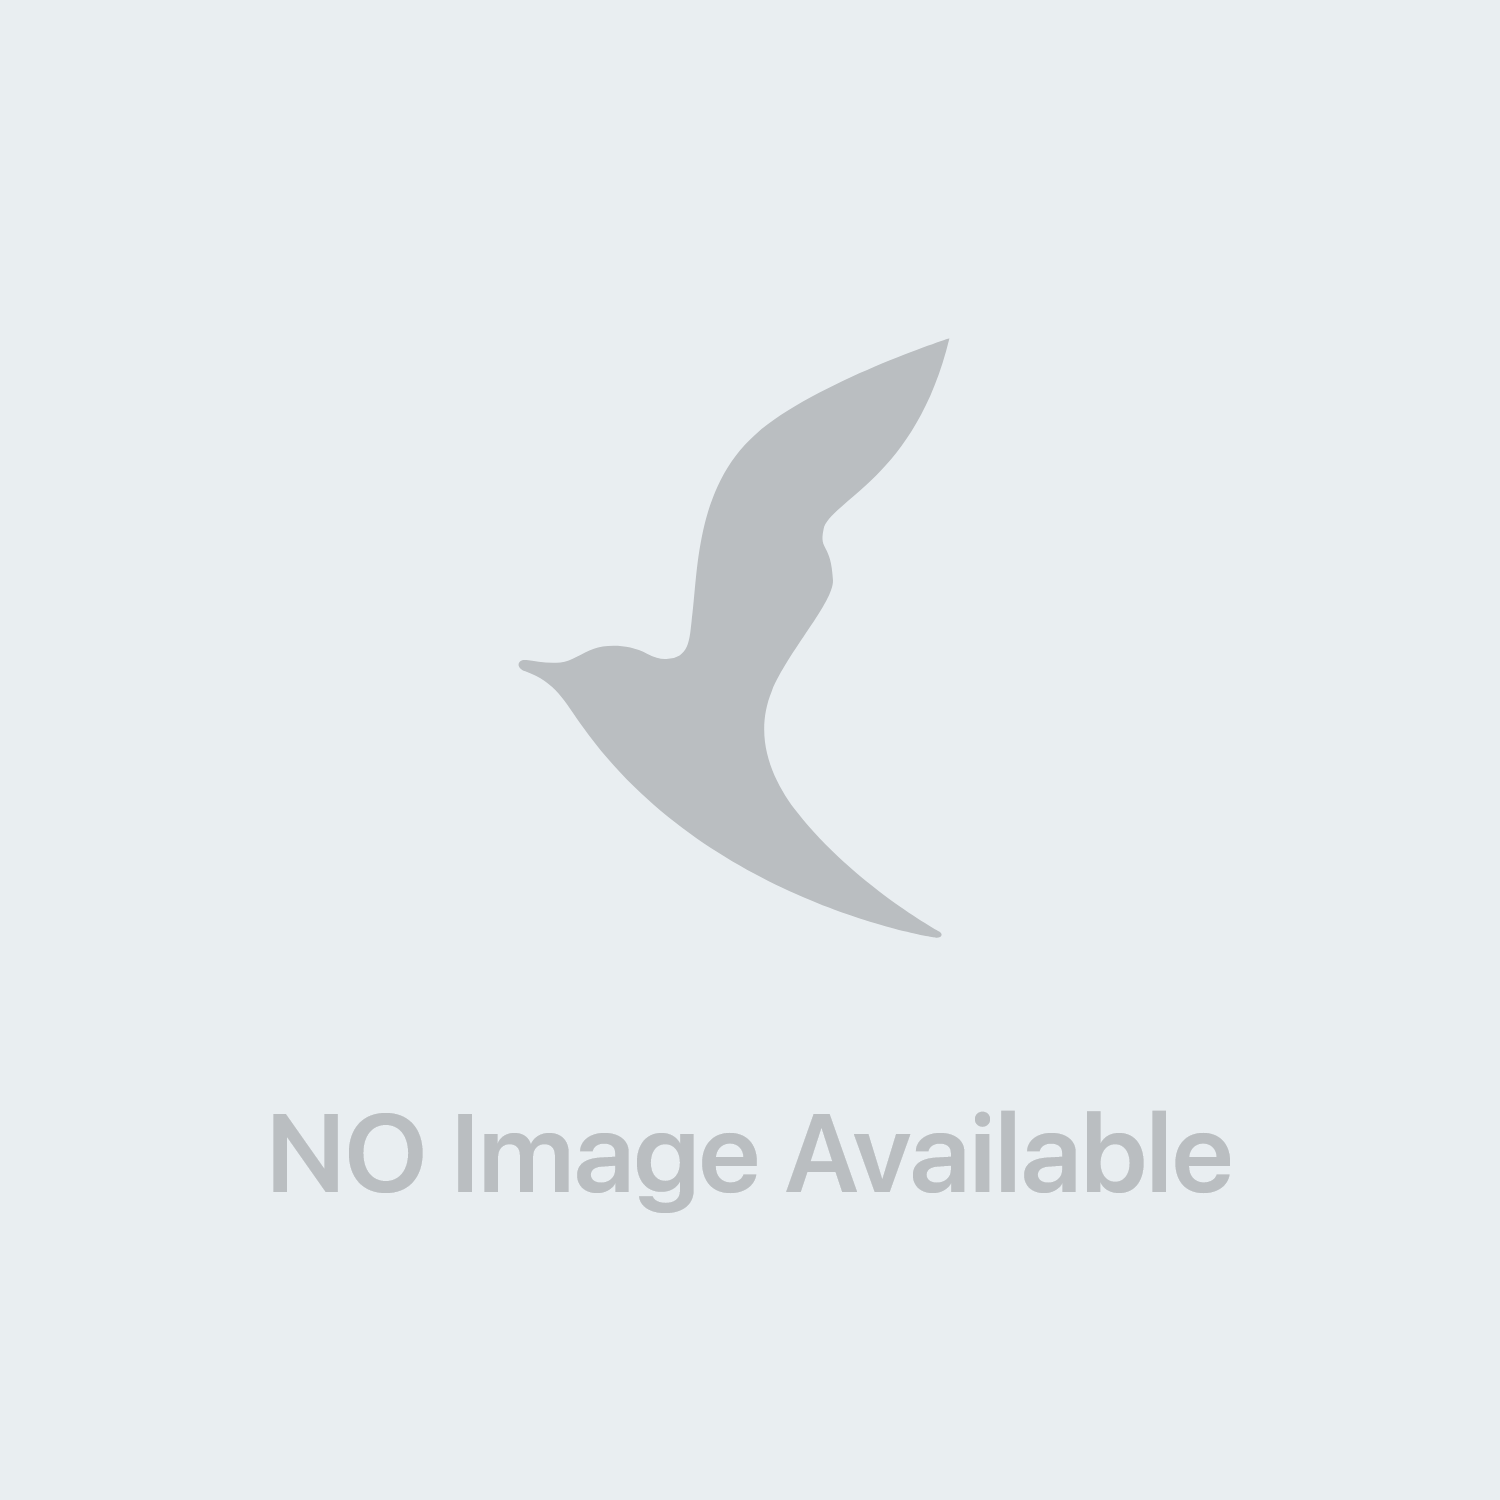 Avene Serenage Unifiant Crema Uniformante Pelli Sensibili Mature SPF 20 - 40 ml